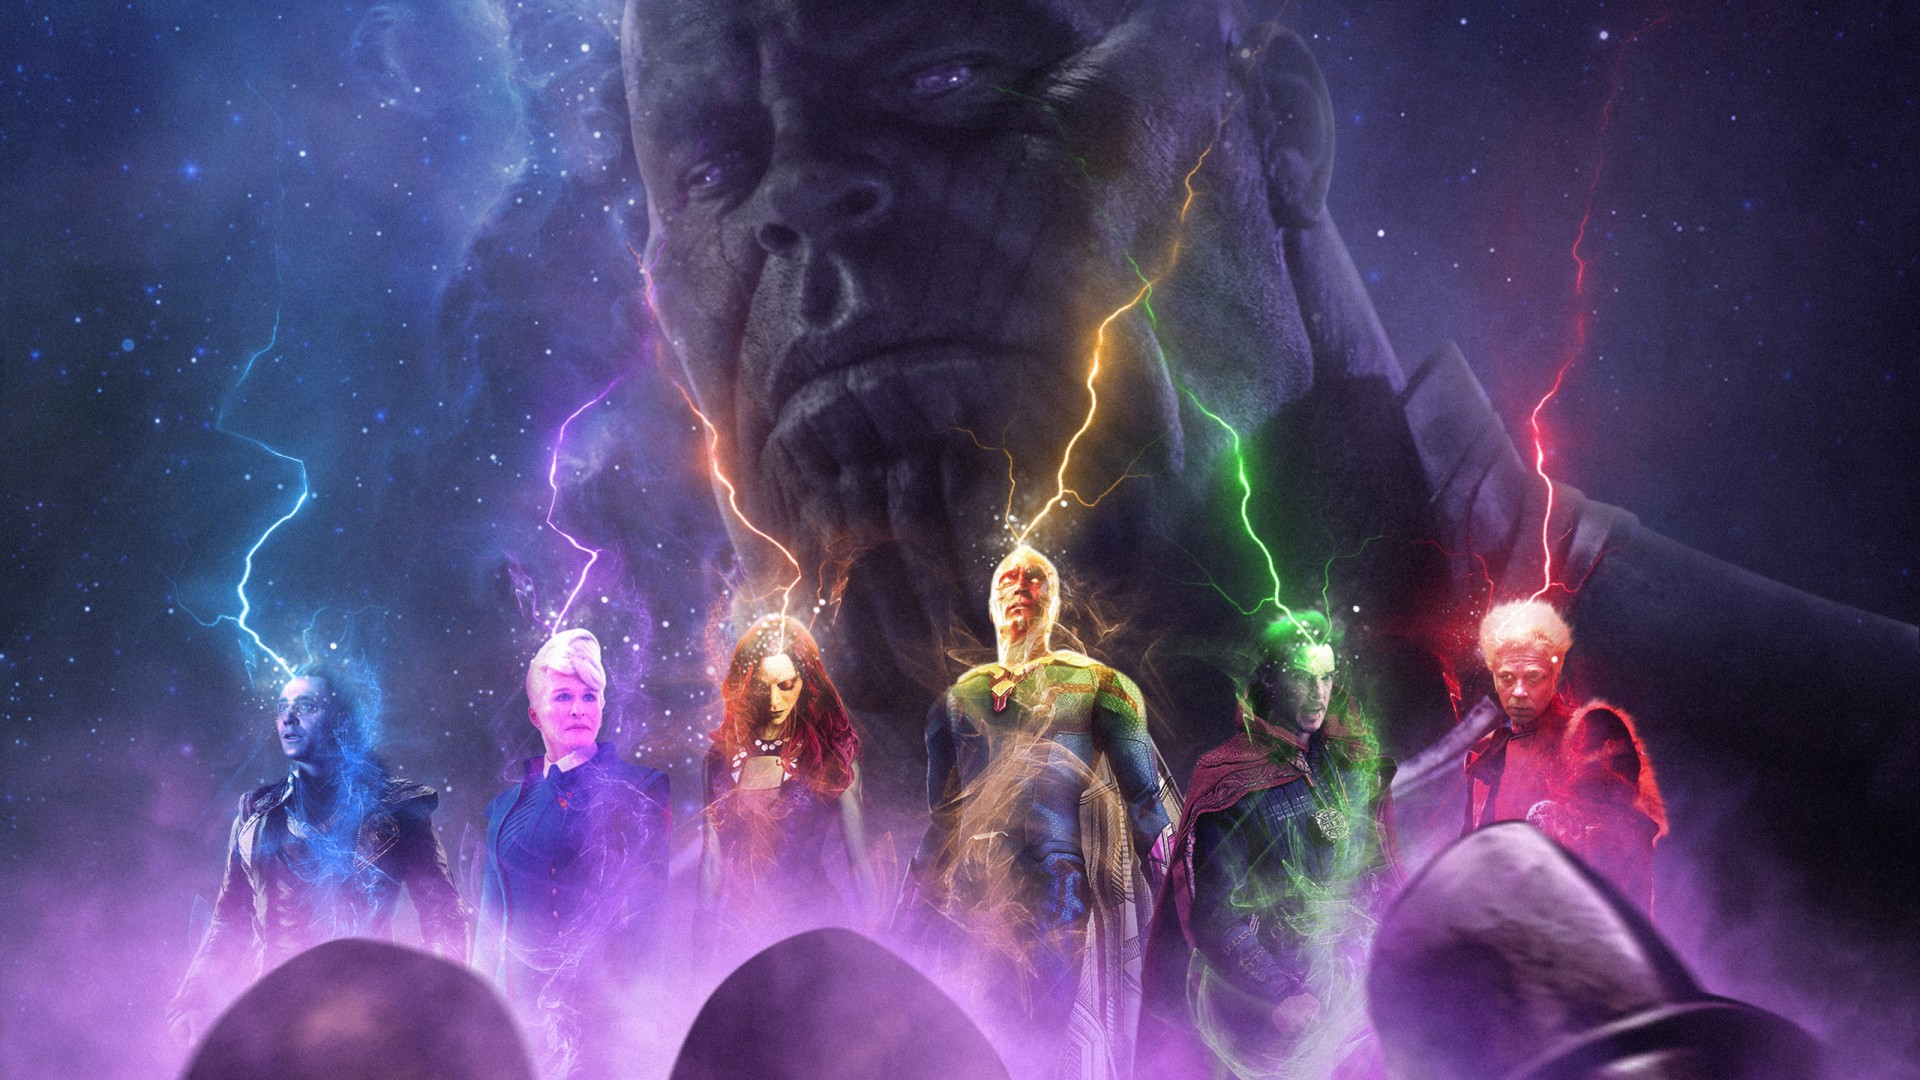 Thanos Wallpaper Iphone X Thanos Vs Avengers Wallpapers Hd Wallpapers Id 27716